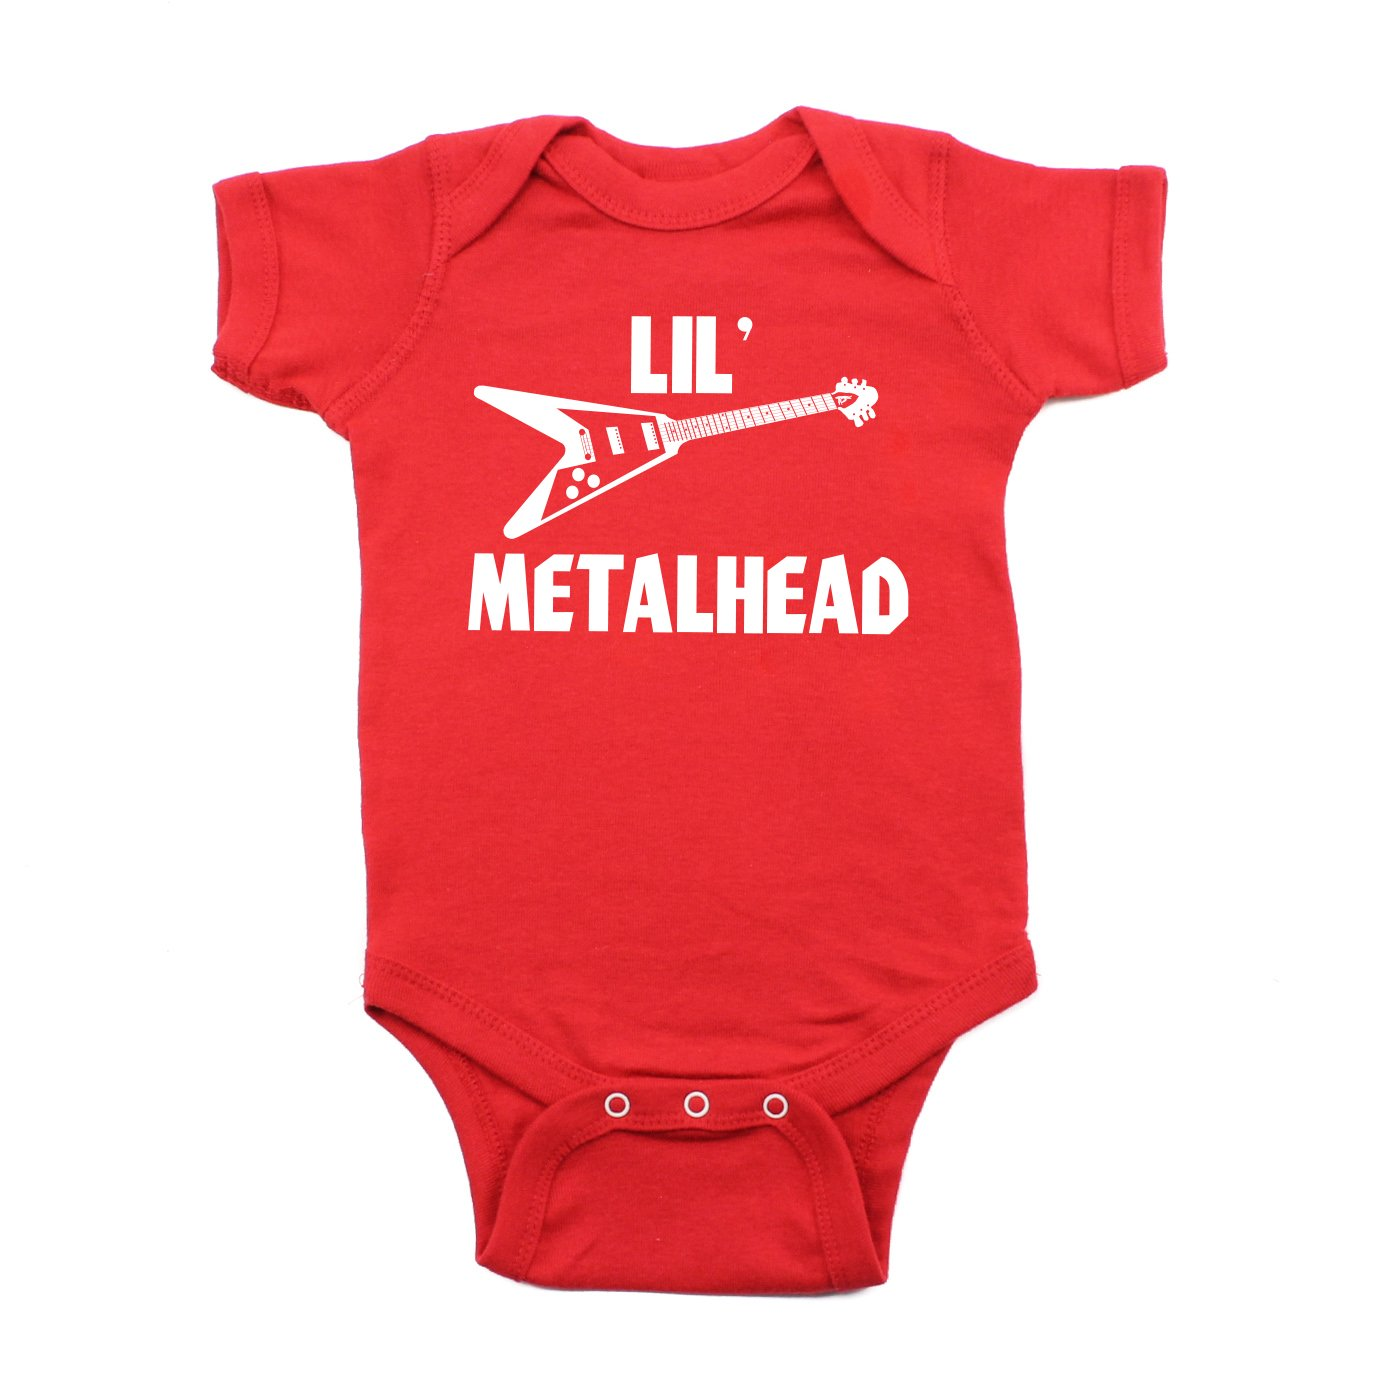 Lil' Metalhead Electric Guitar Short Sleeve Baby Infant Bodysuit Crazy Baby Clothing C8010040